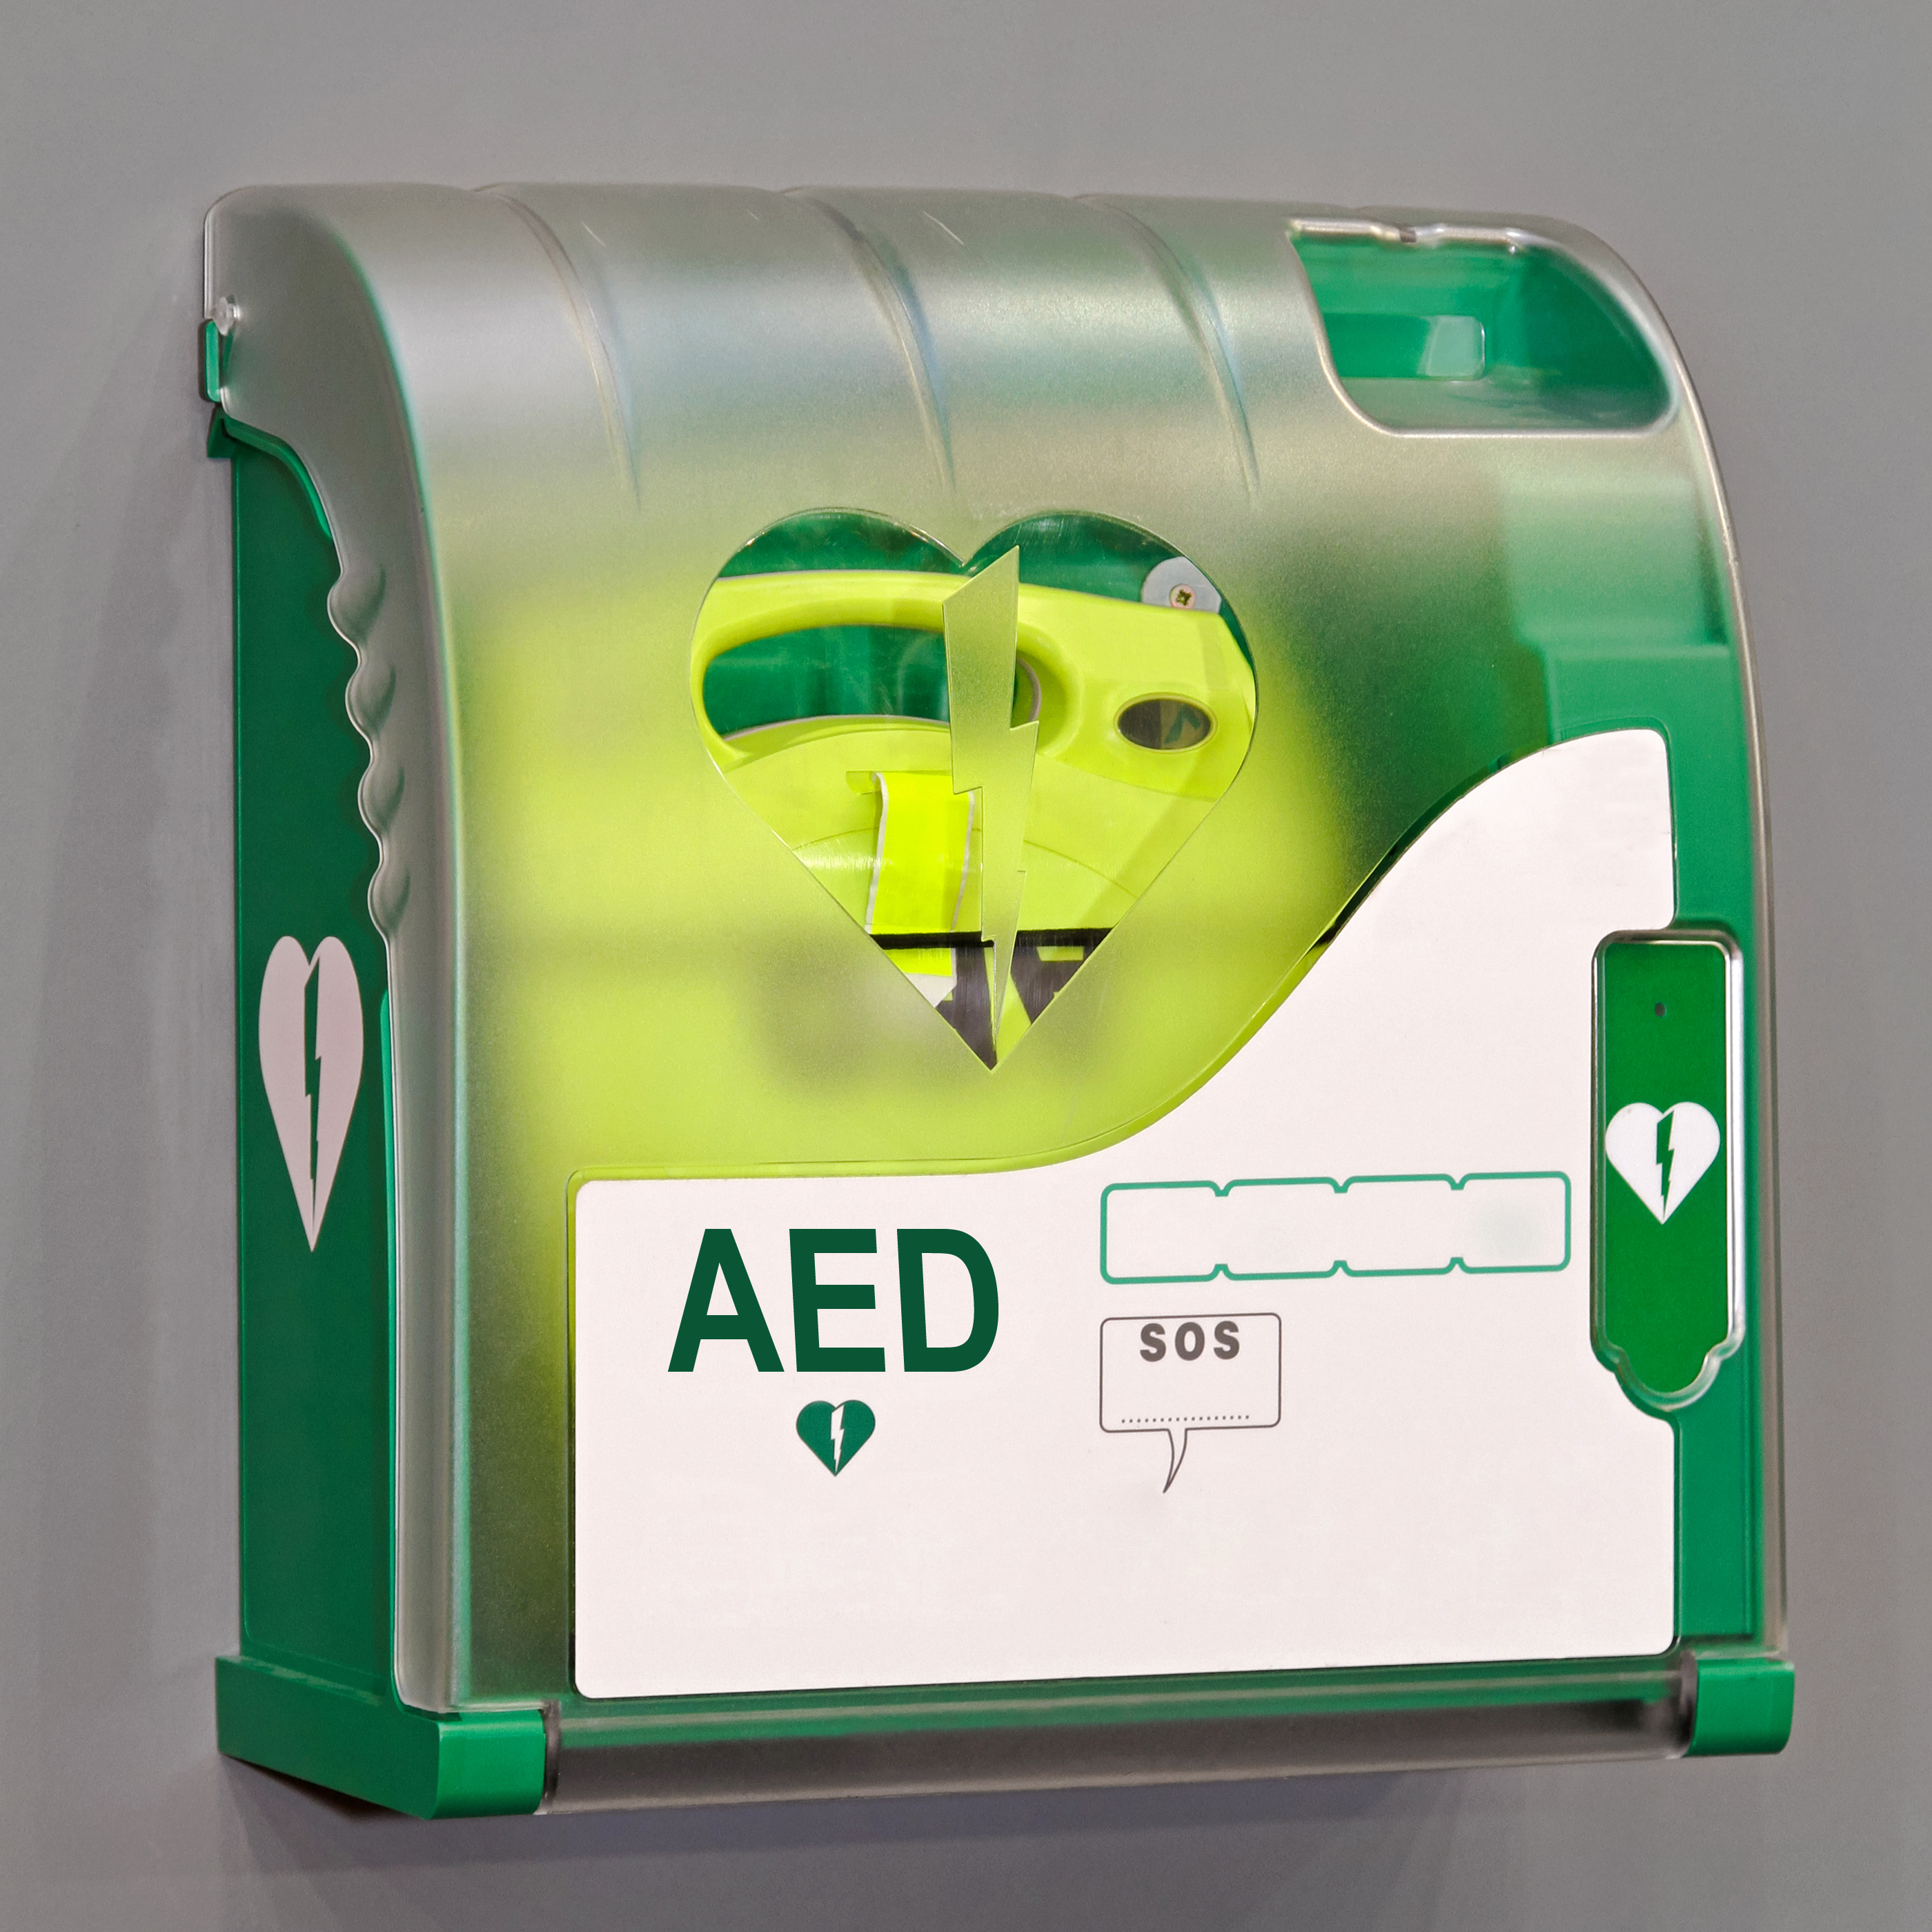 Image representing P266 Automated External Defibrillators